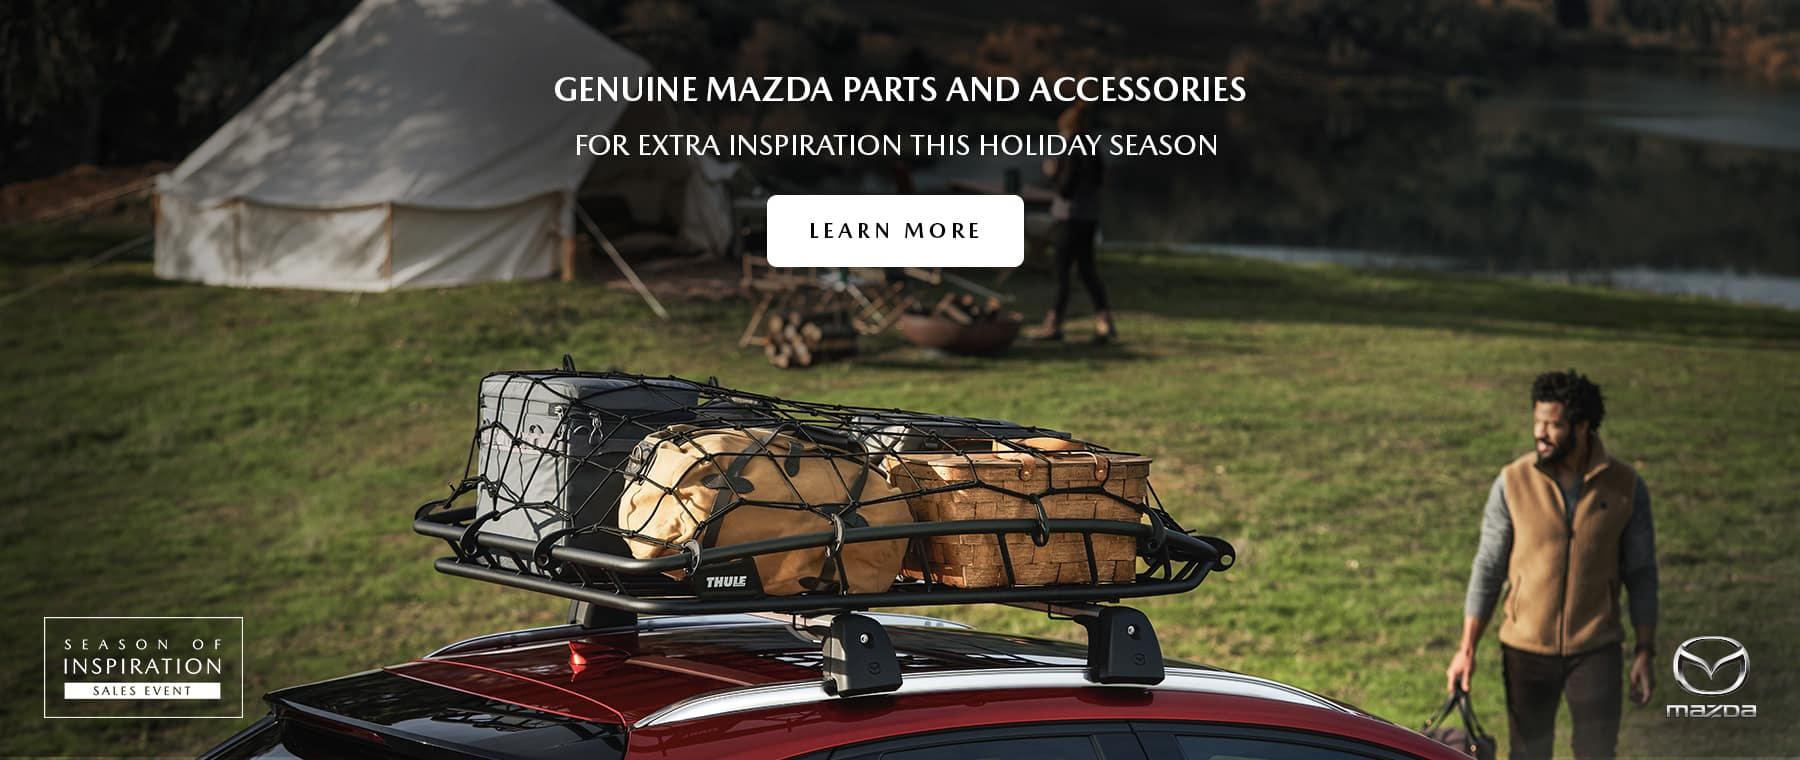 HolidayAccessoriesBanner_1800x760